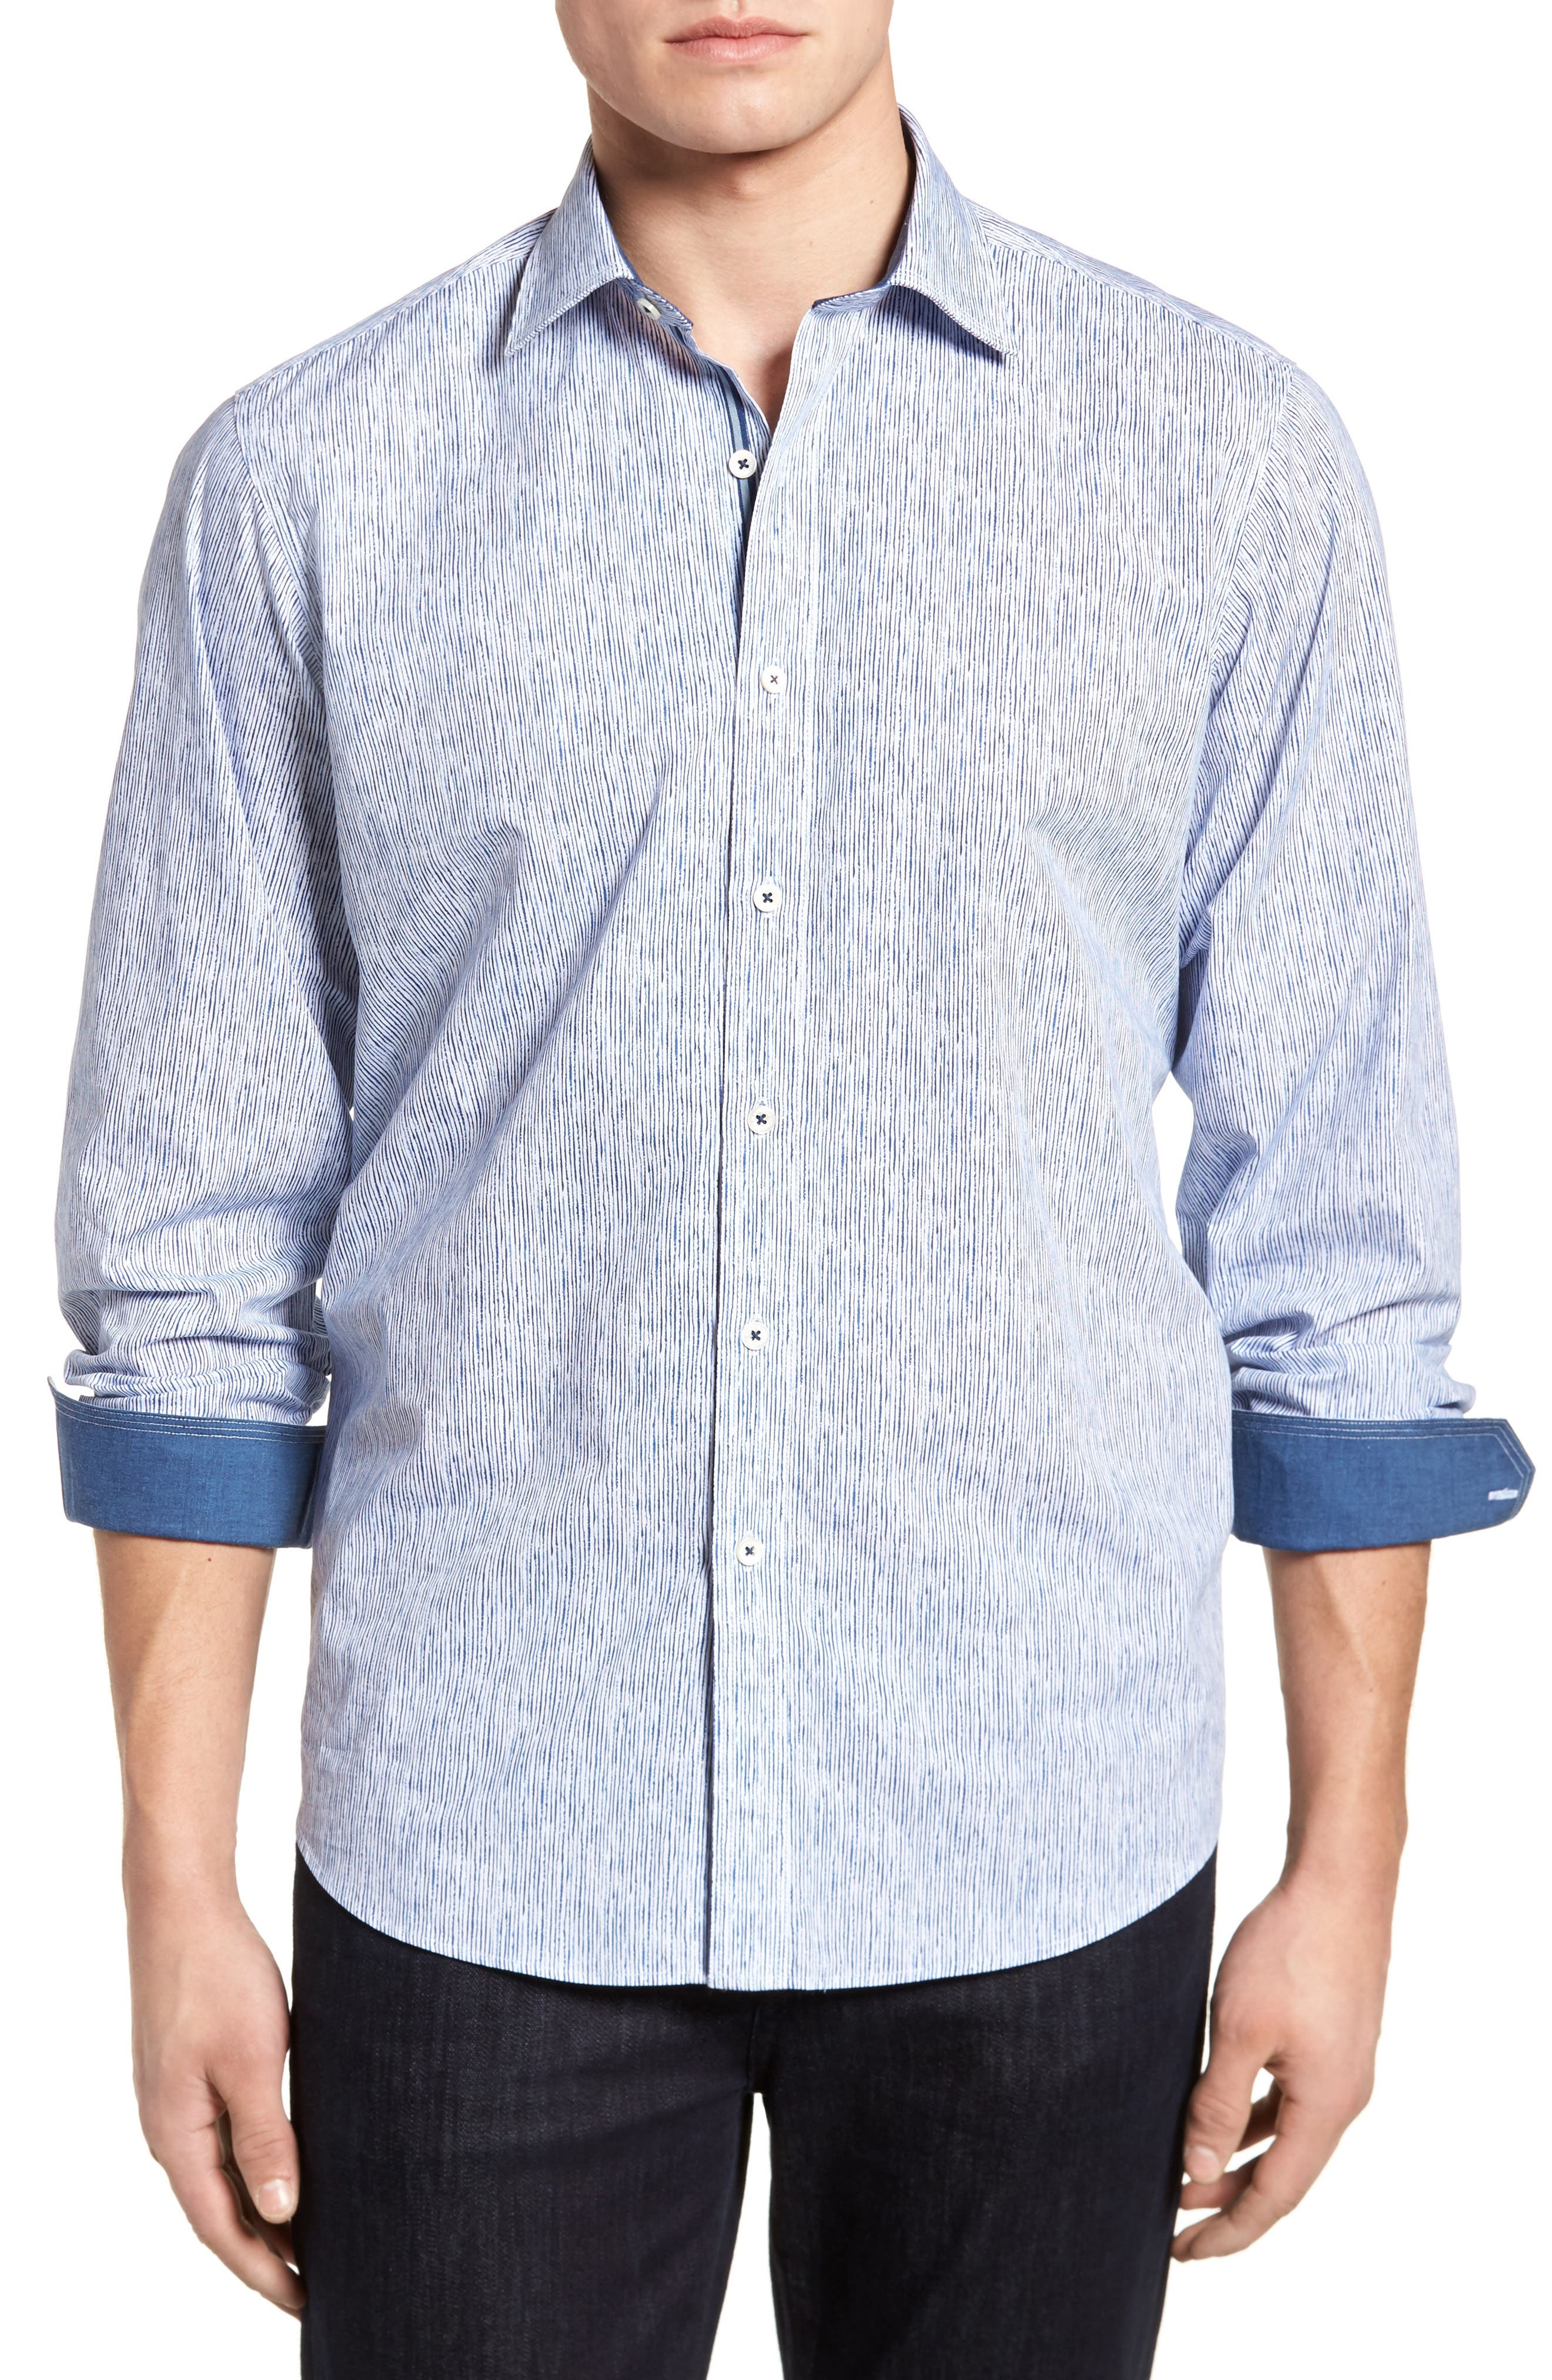 Freehand Pin Lines Classic Fit Sport Shirt,                         Main,                         color, 100